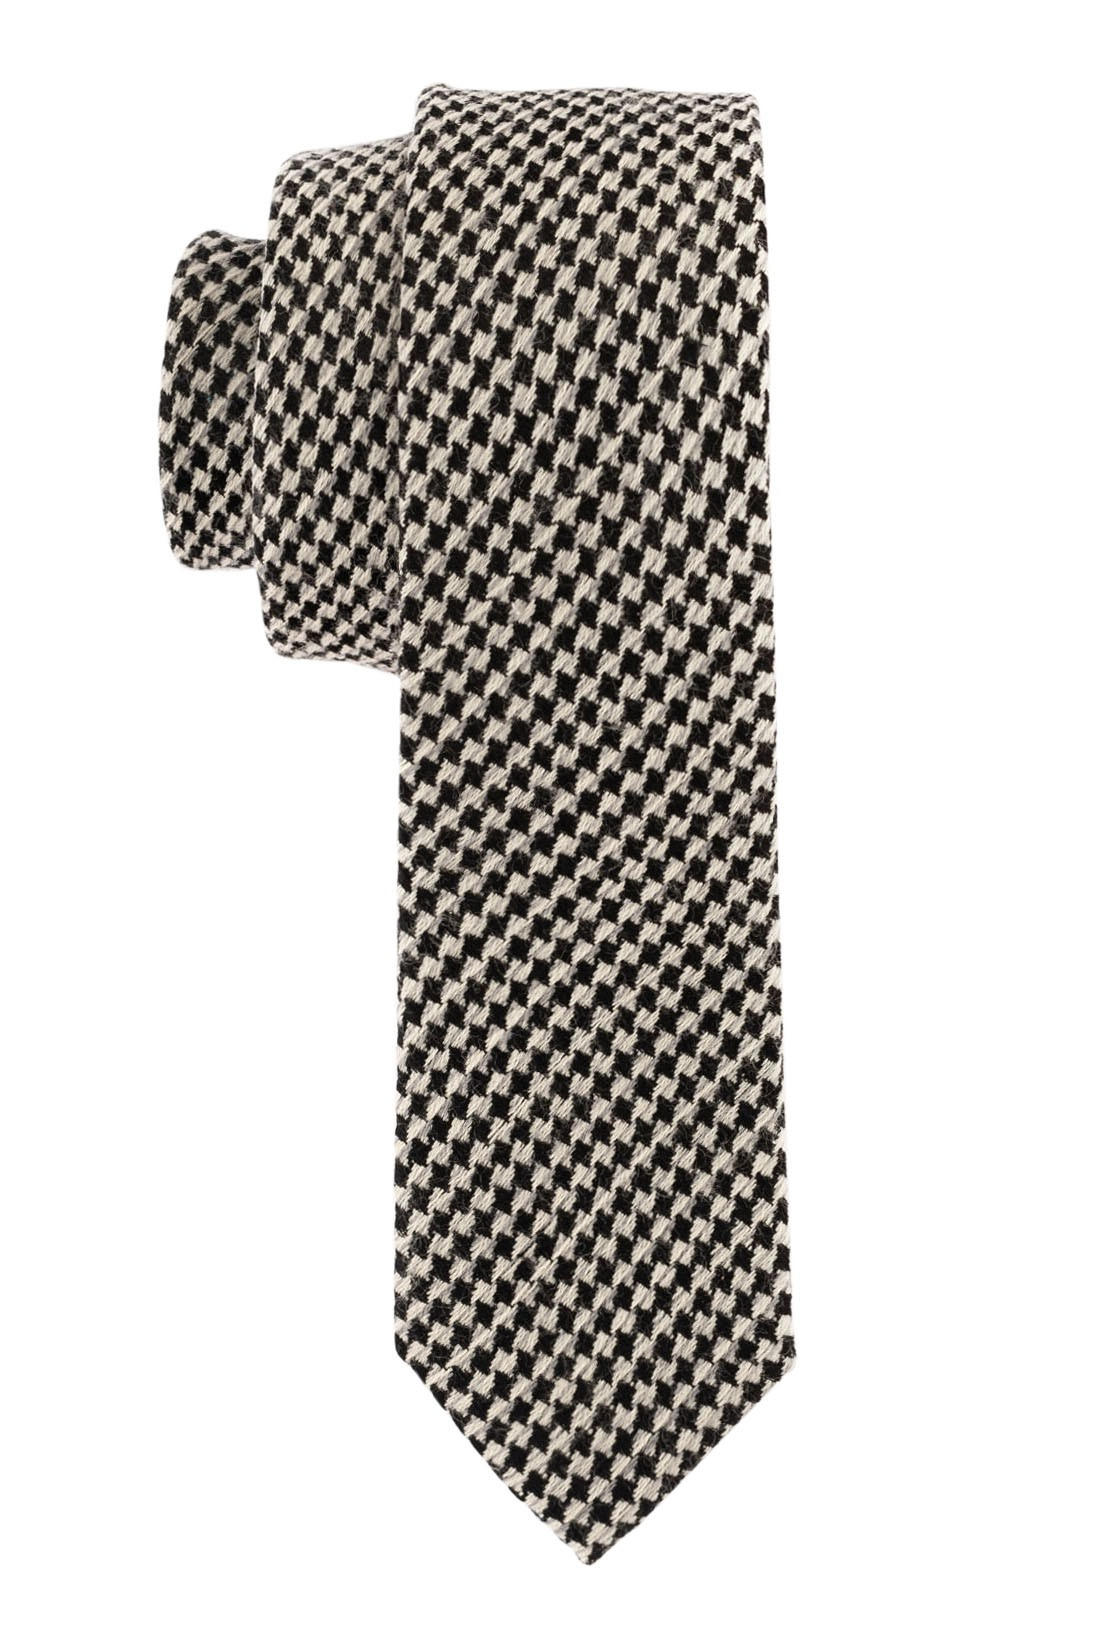 Houndstooth Black And Grey 50% Wool and 50% Silk Necktie